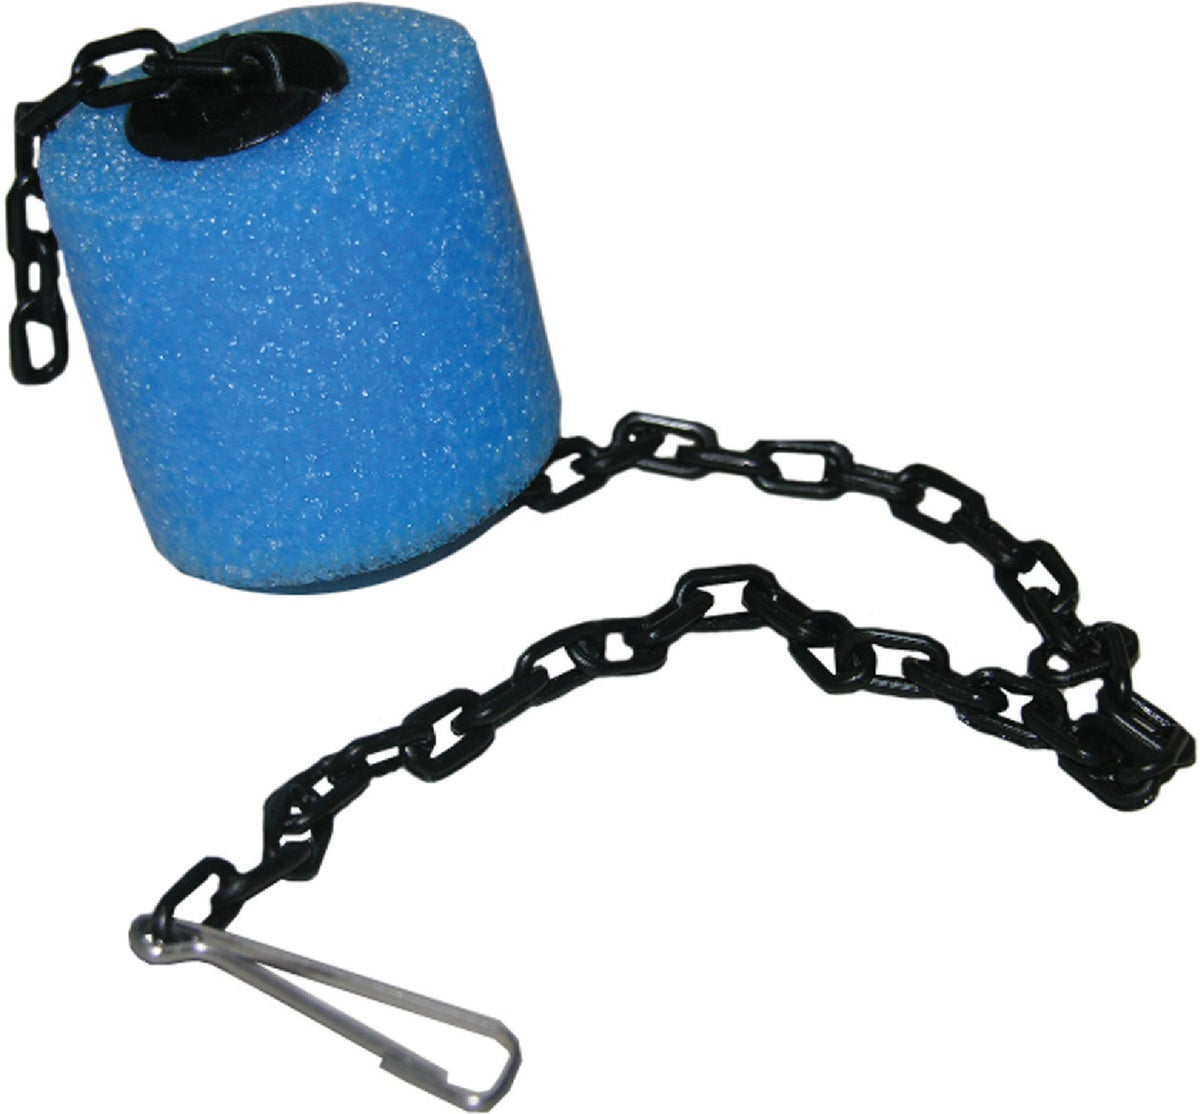 LASCO 04-1527 Toilet Flapper Chain with Hook Flappers